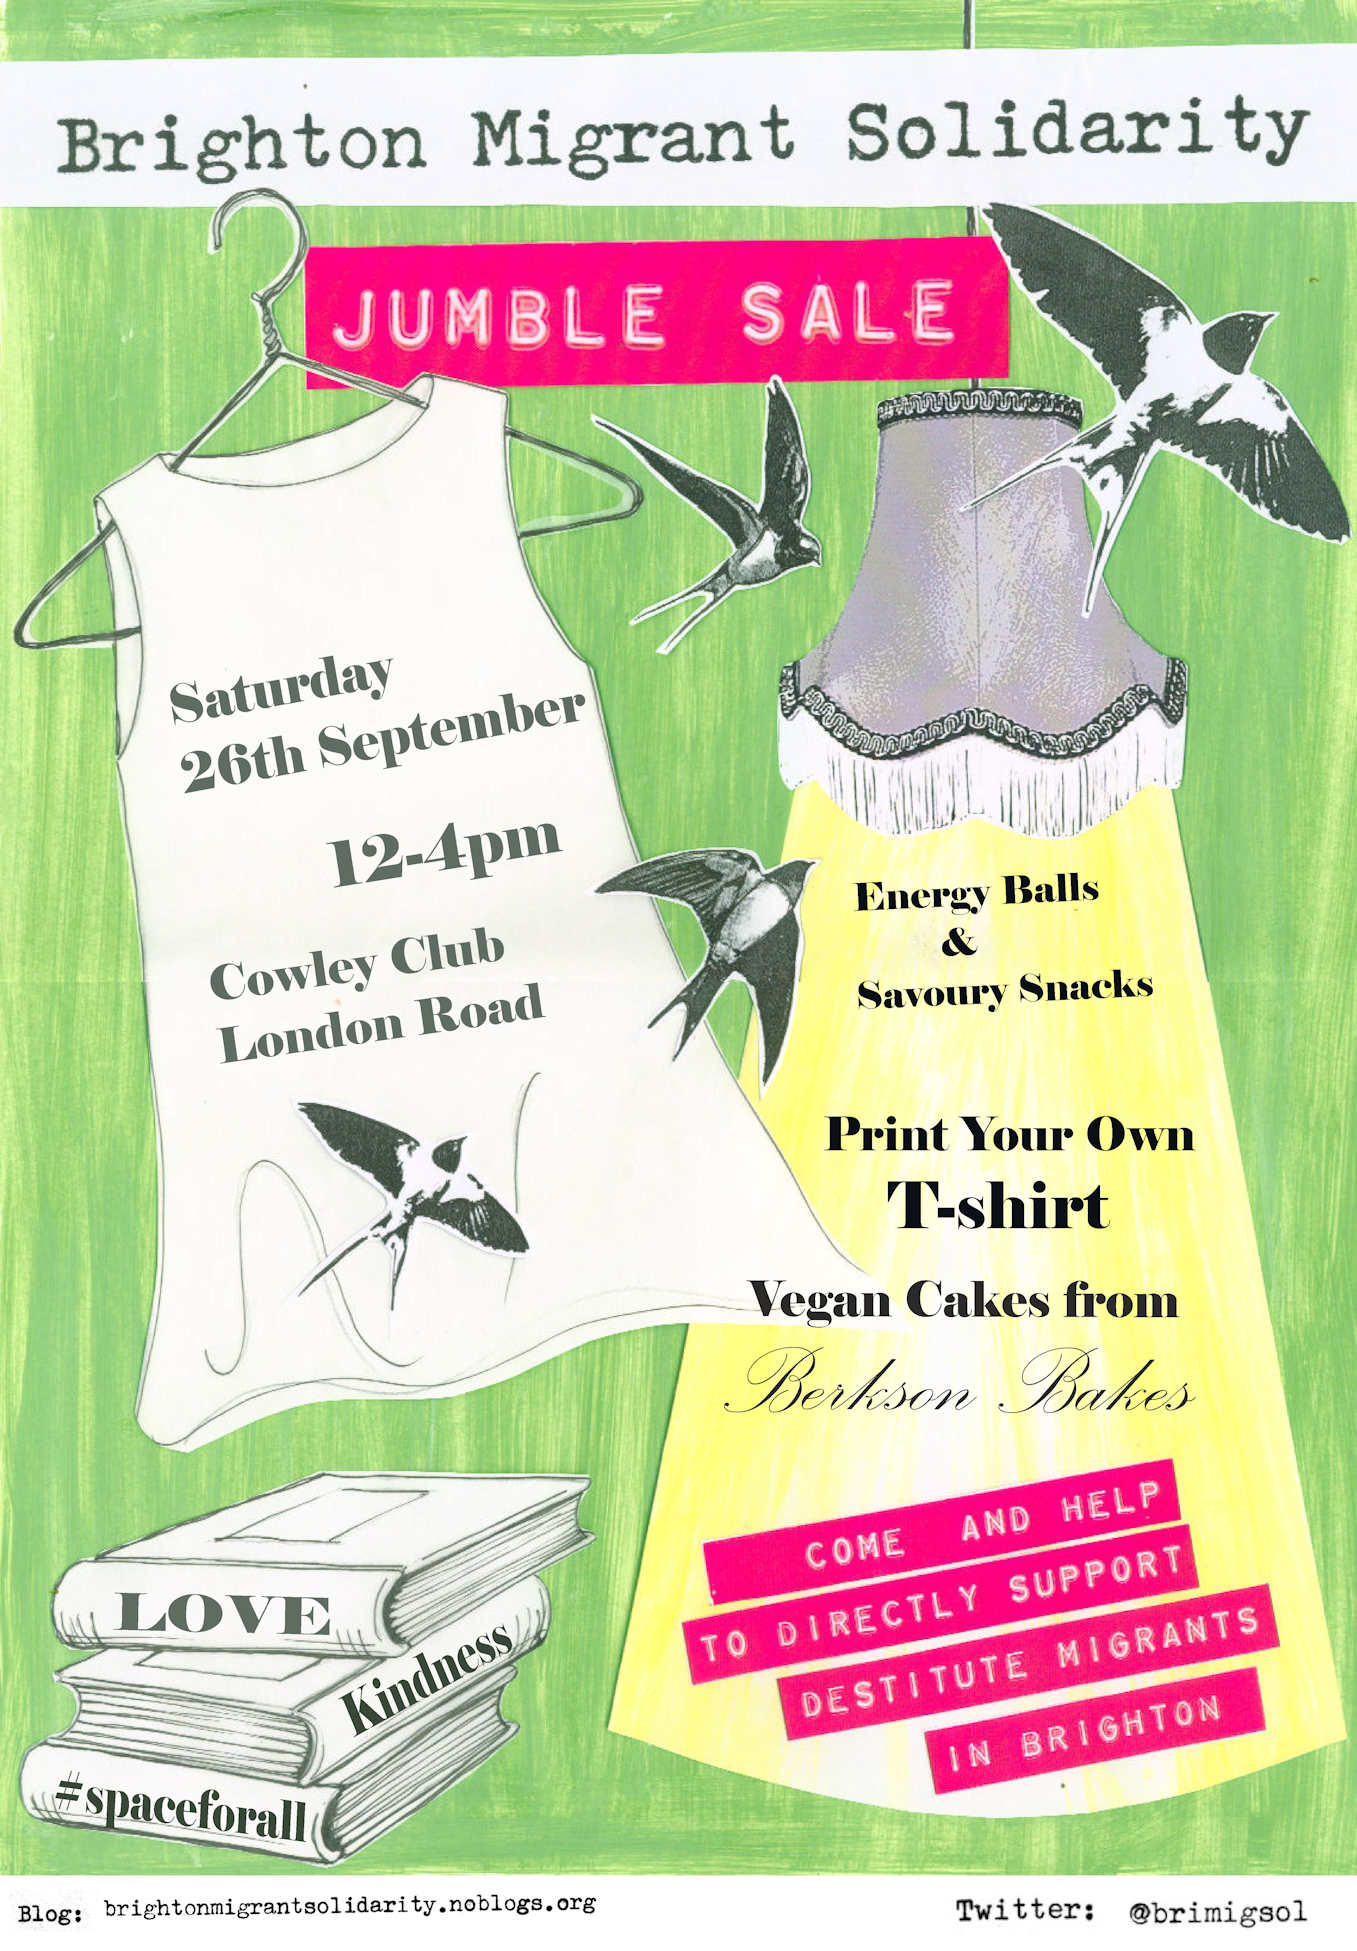 Jumble Sale Poster, 26 sept Cowley Club